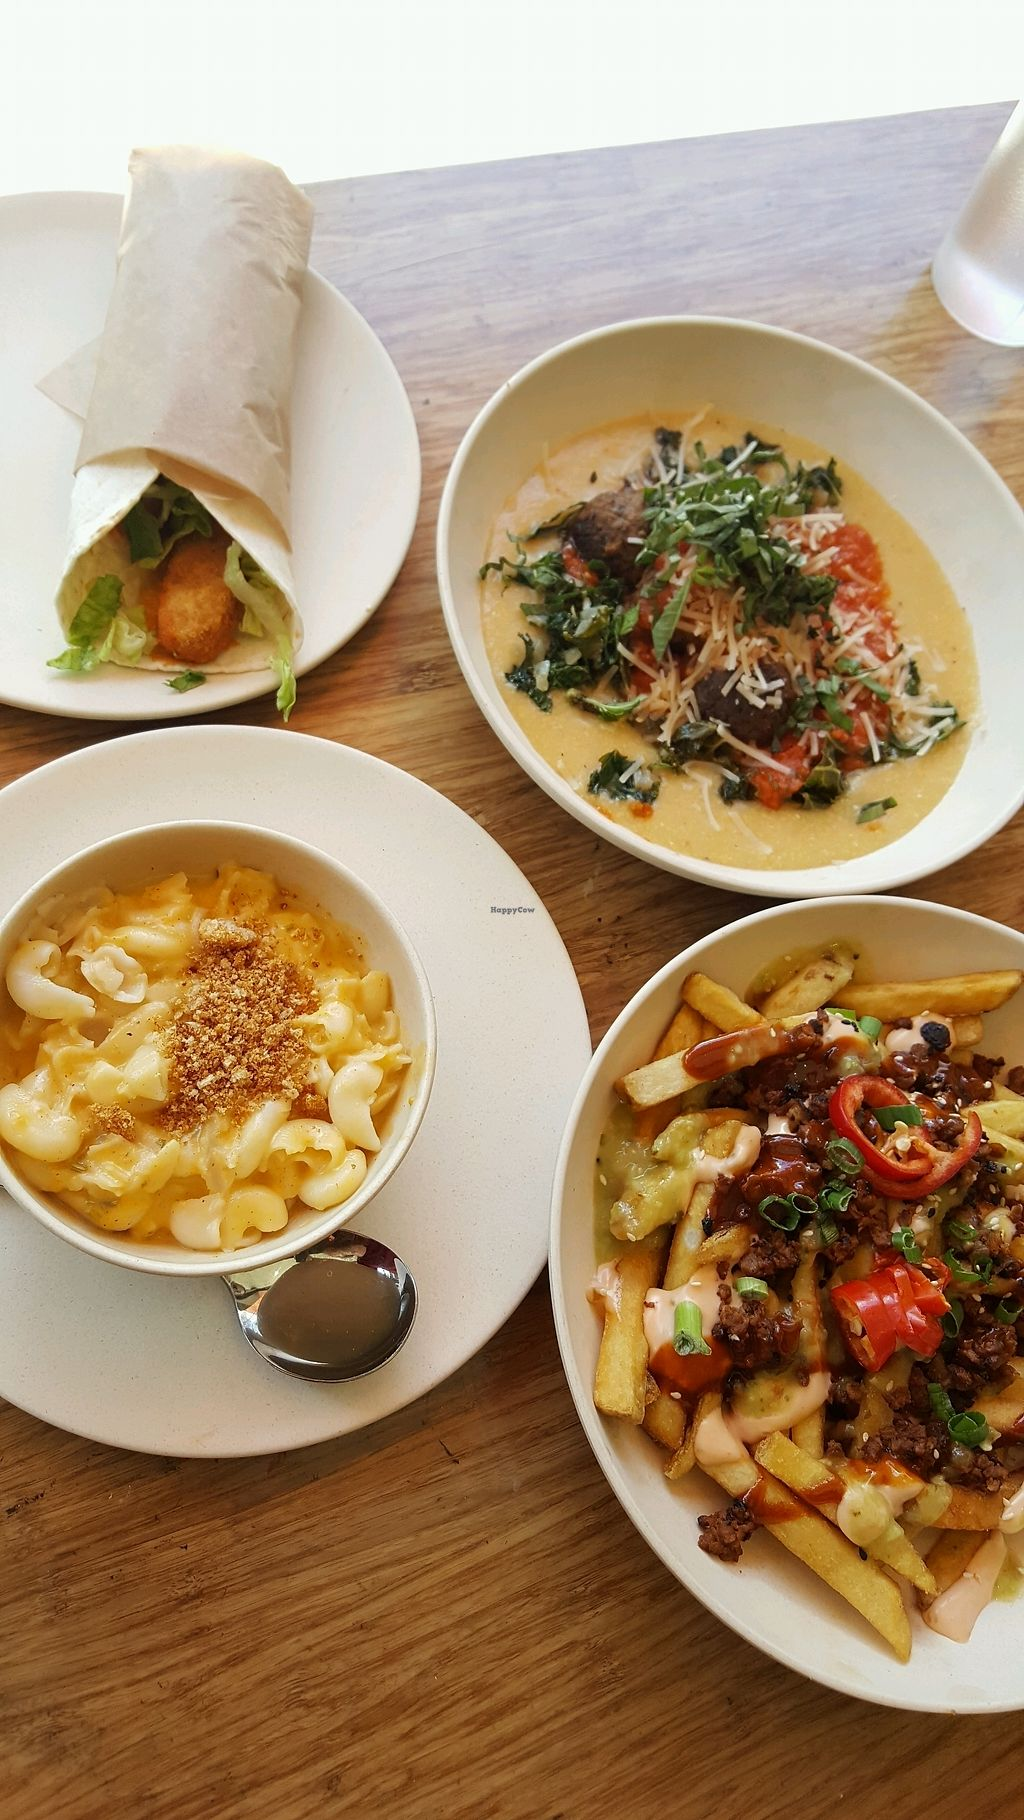 """Photo of Veggie Grill  by <a href=""""/members/profile/kwhalon"""">kwhalon</a> <br/>Buffalo chicken wrap, Mac n cheese, Meatball + polenta bowl, Kung fu fries <br/> April 16, 2018  - <a href='/contact/abuse/image/40894/386616'>Report</a>"""